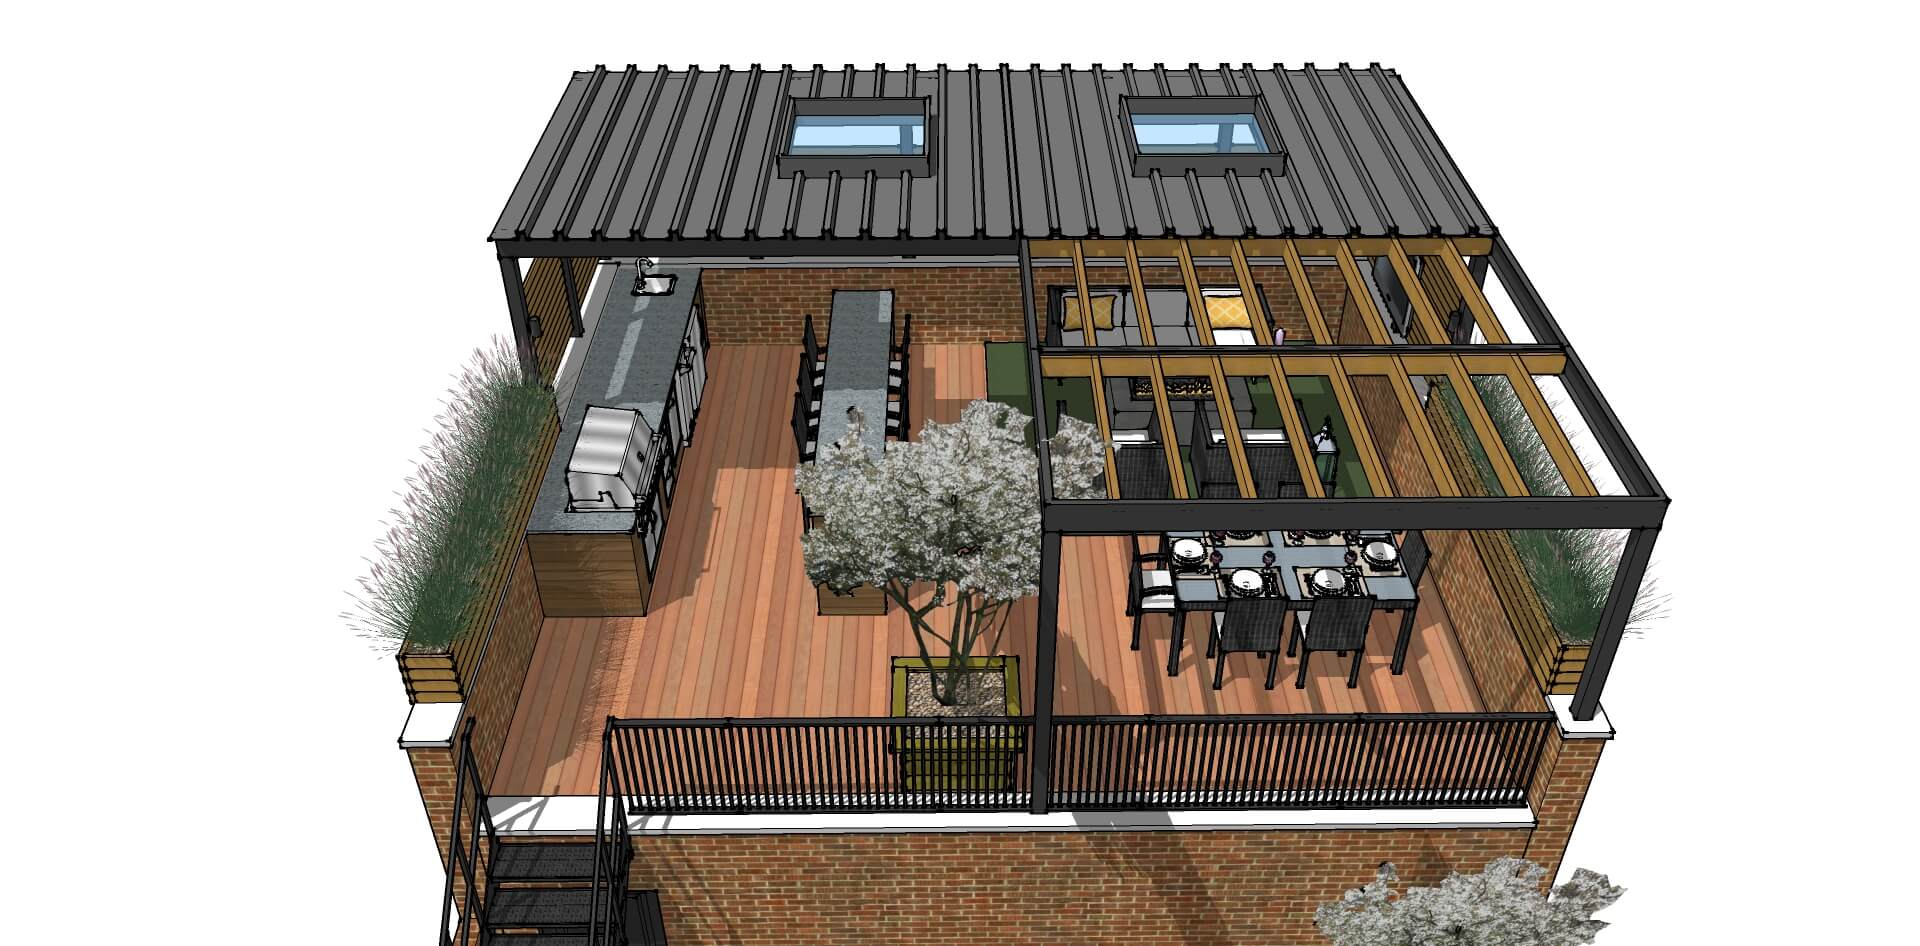 garage roof deck renovation lakeview chicago il prefab garden buildings prefab flat roof garage sloped